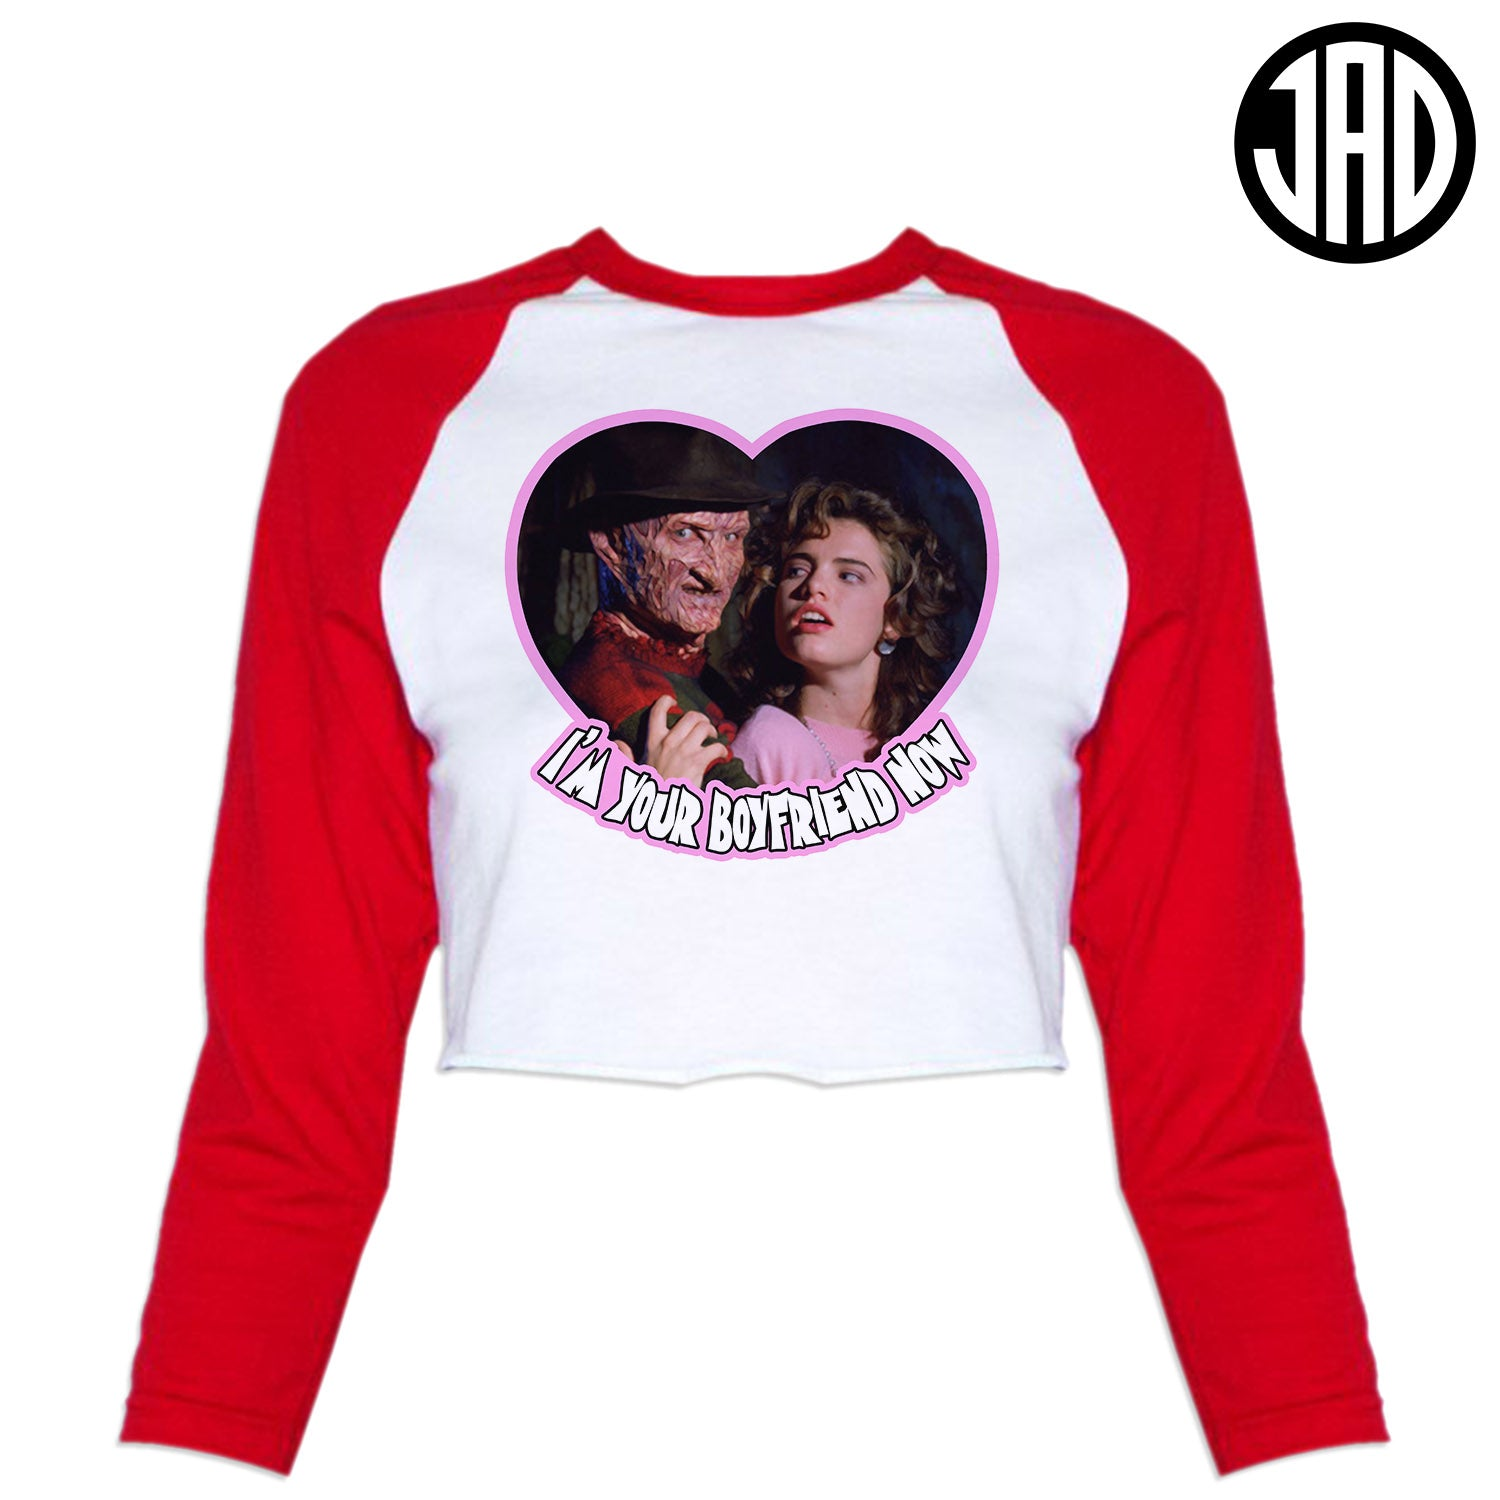 I'm Your Boyfriend Now - Women's Cropped Baseball Tee